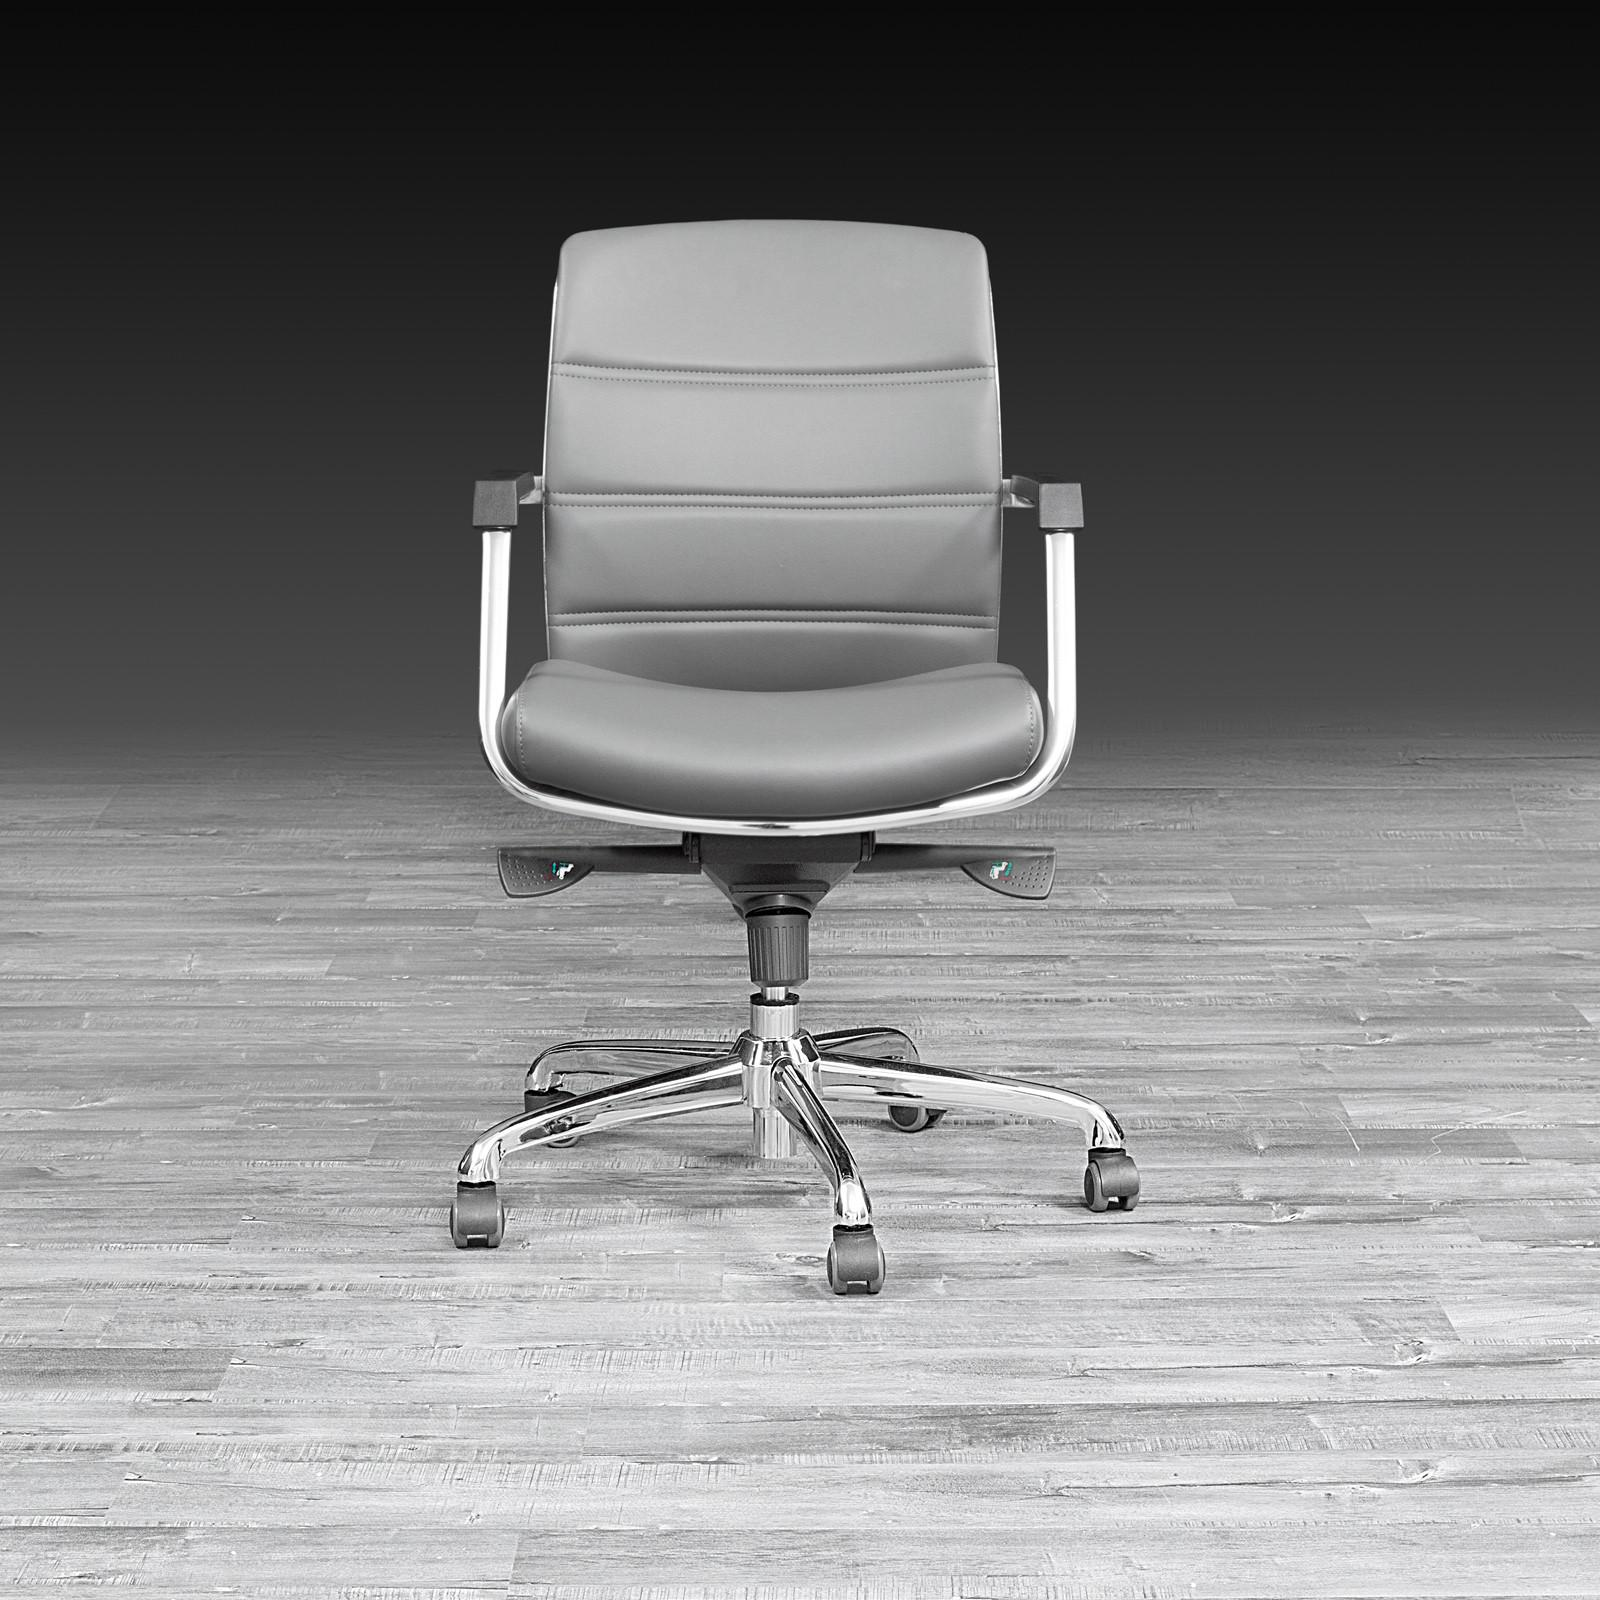 Polished Stainless Steel Base And Frame With Gary Faux Leather Upholstery.